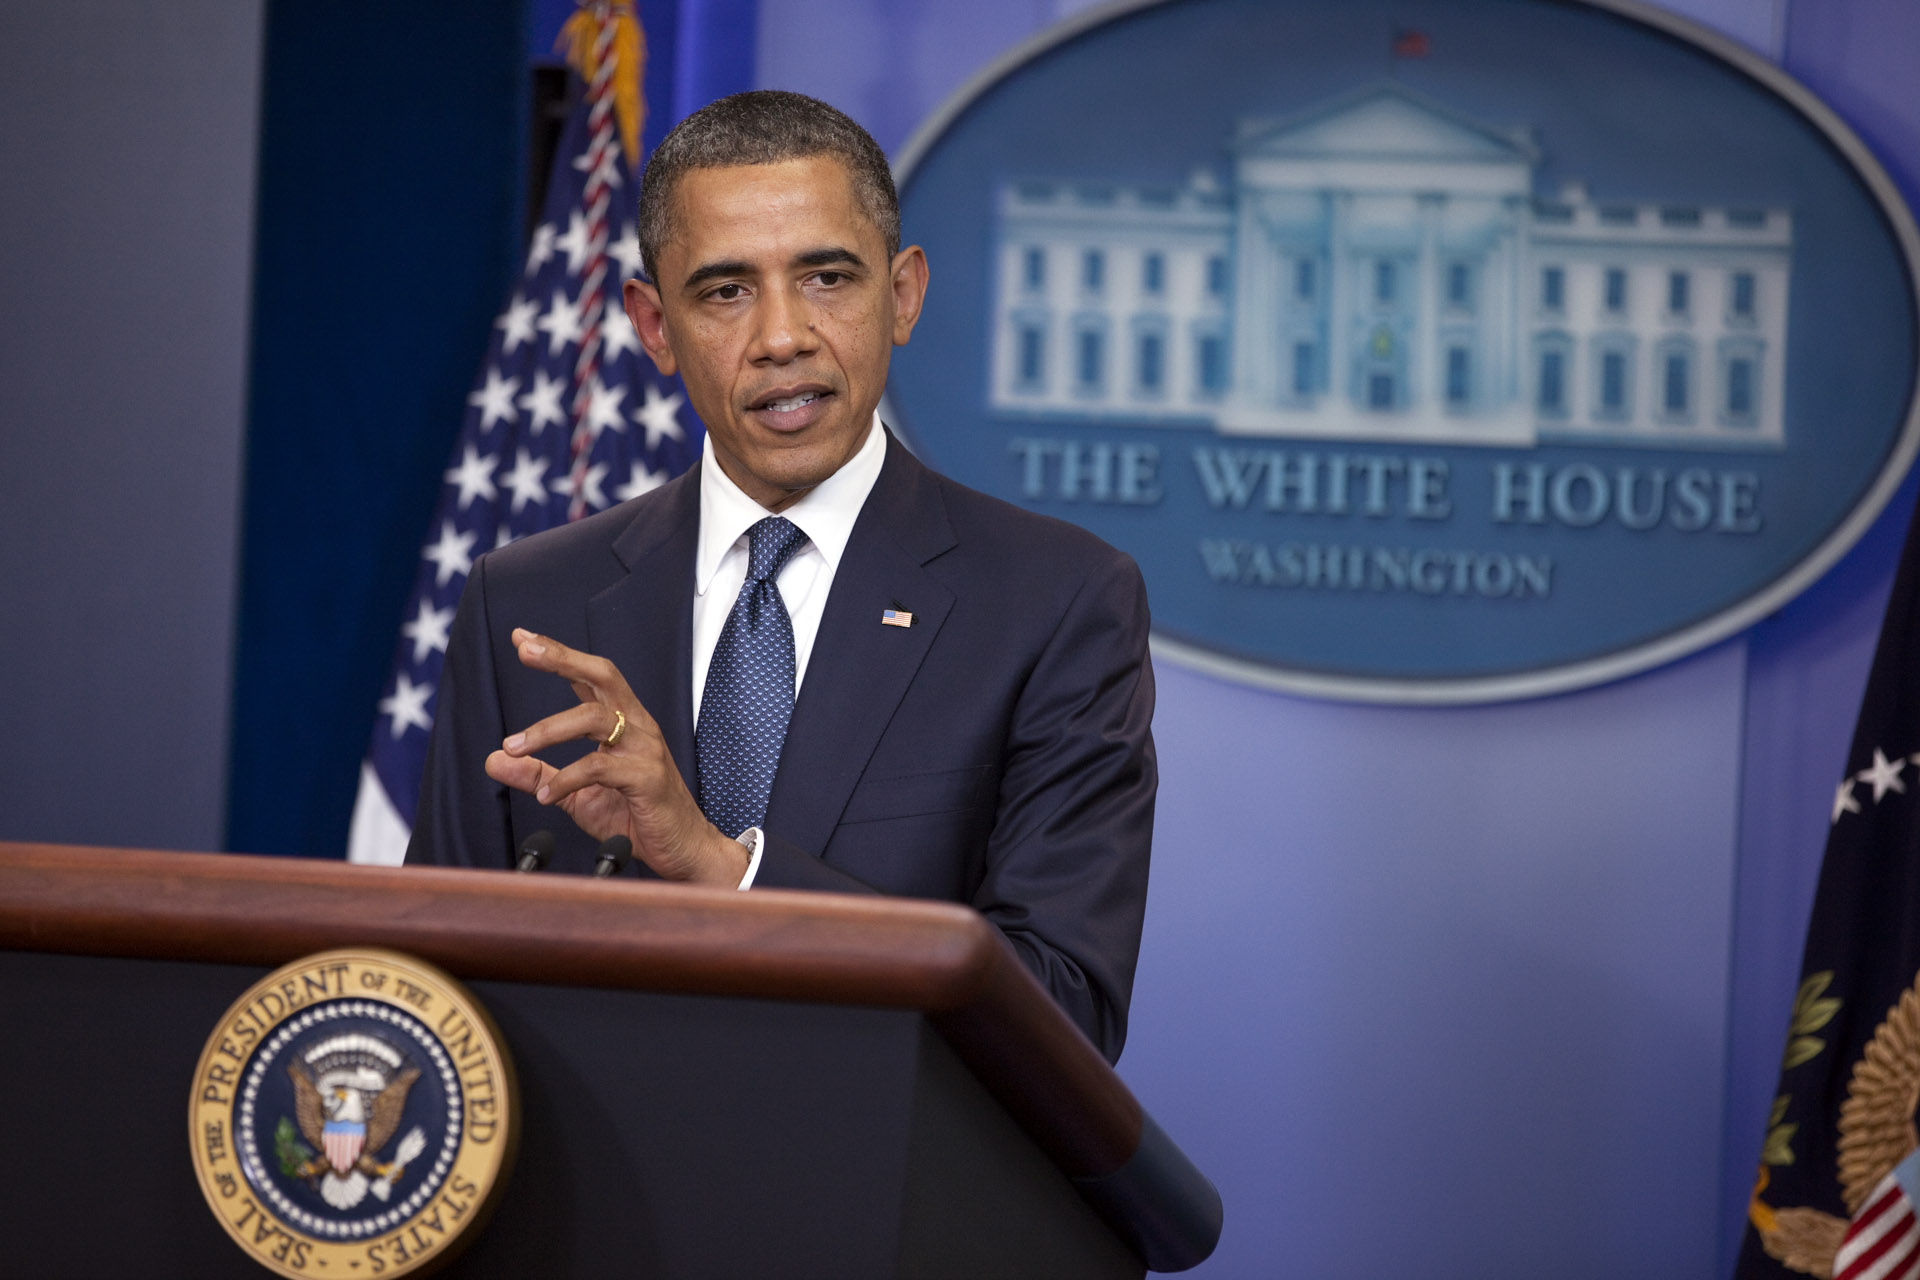 President Barack Obama on Efforts to Find a Balanced Approach to Deficit Reduction